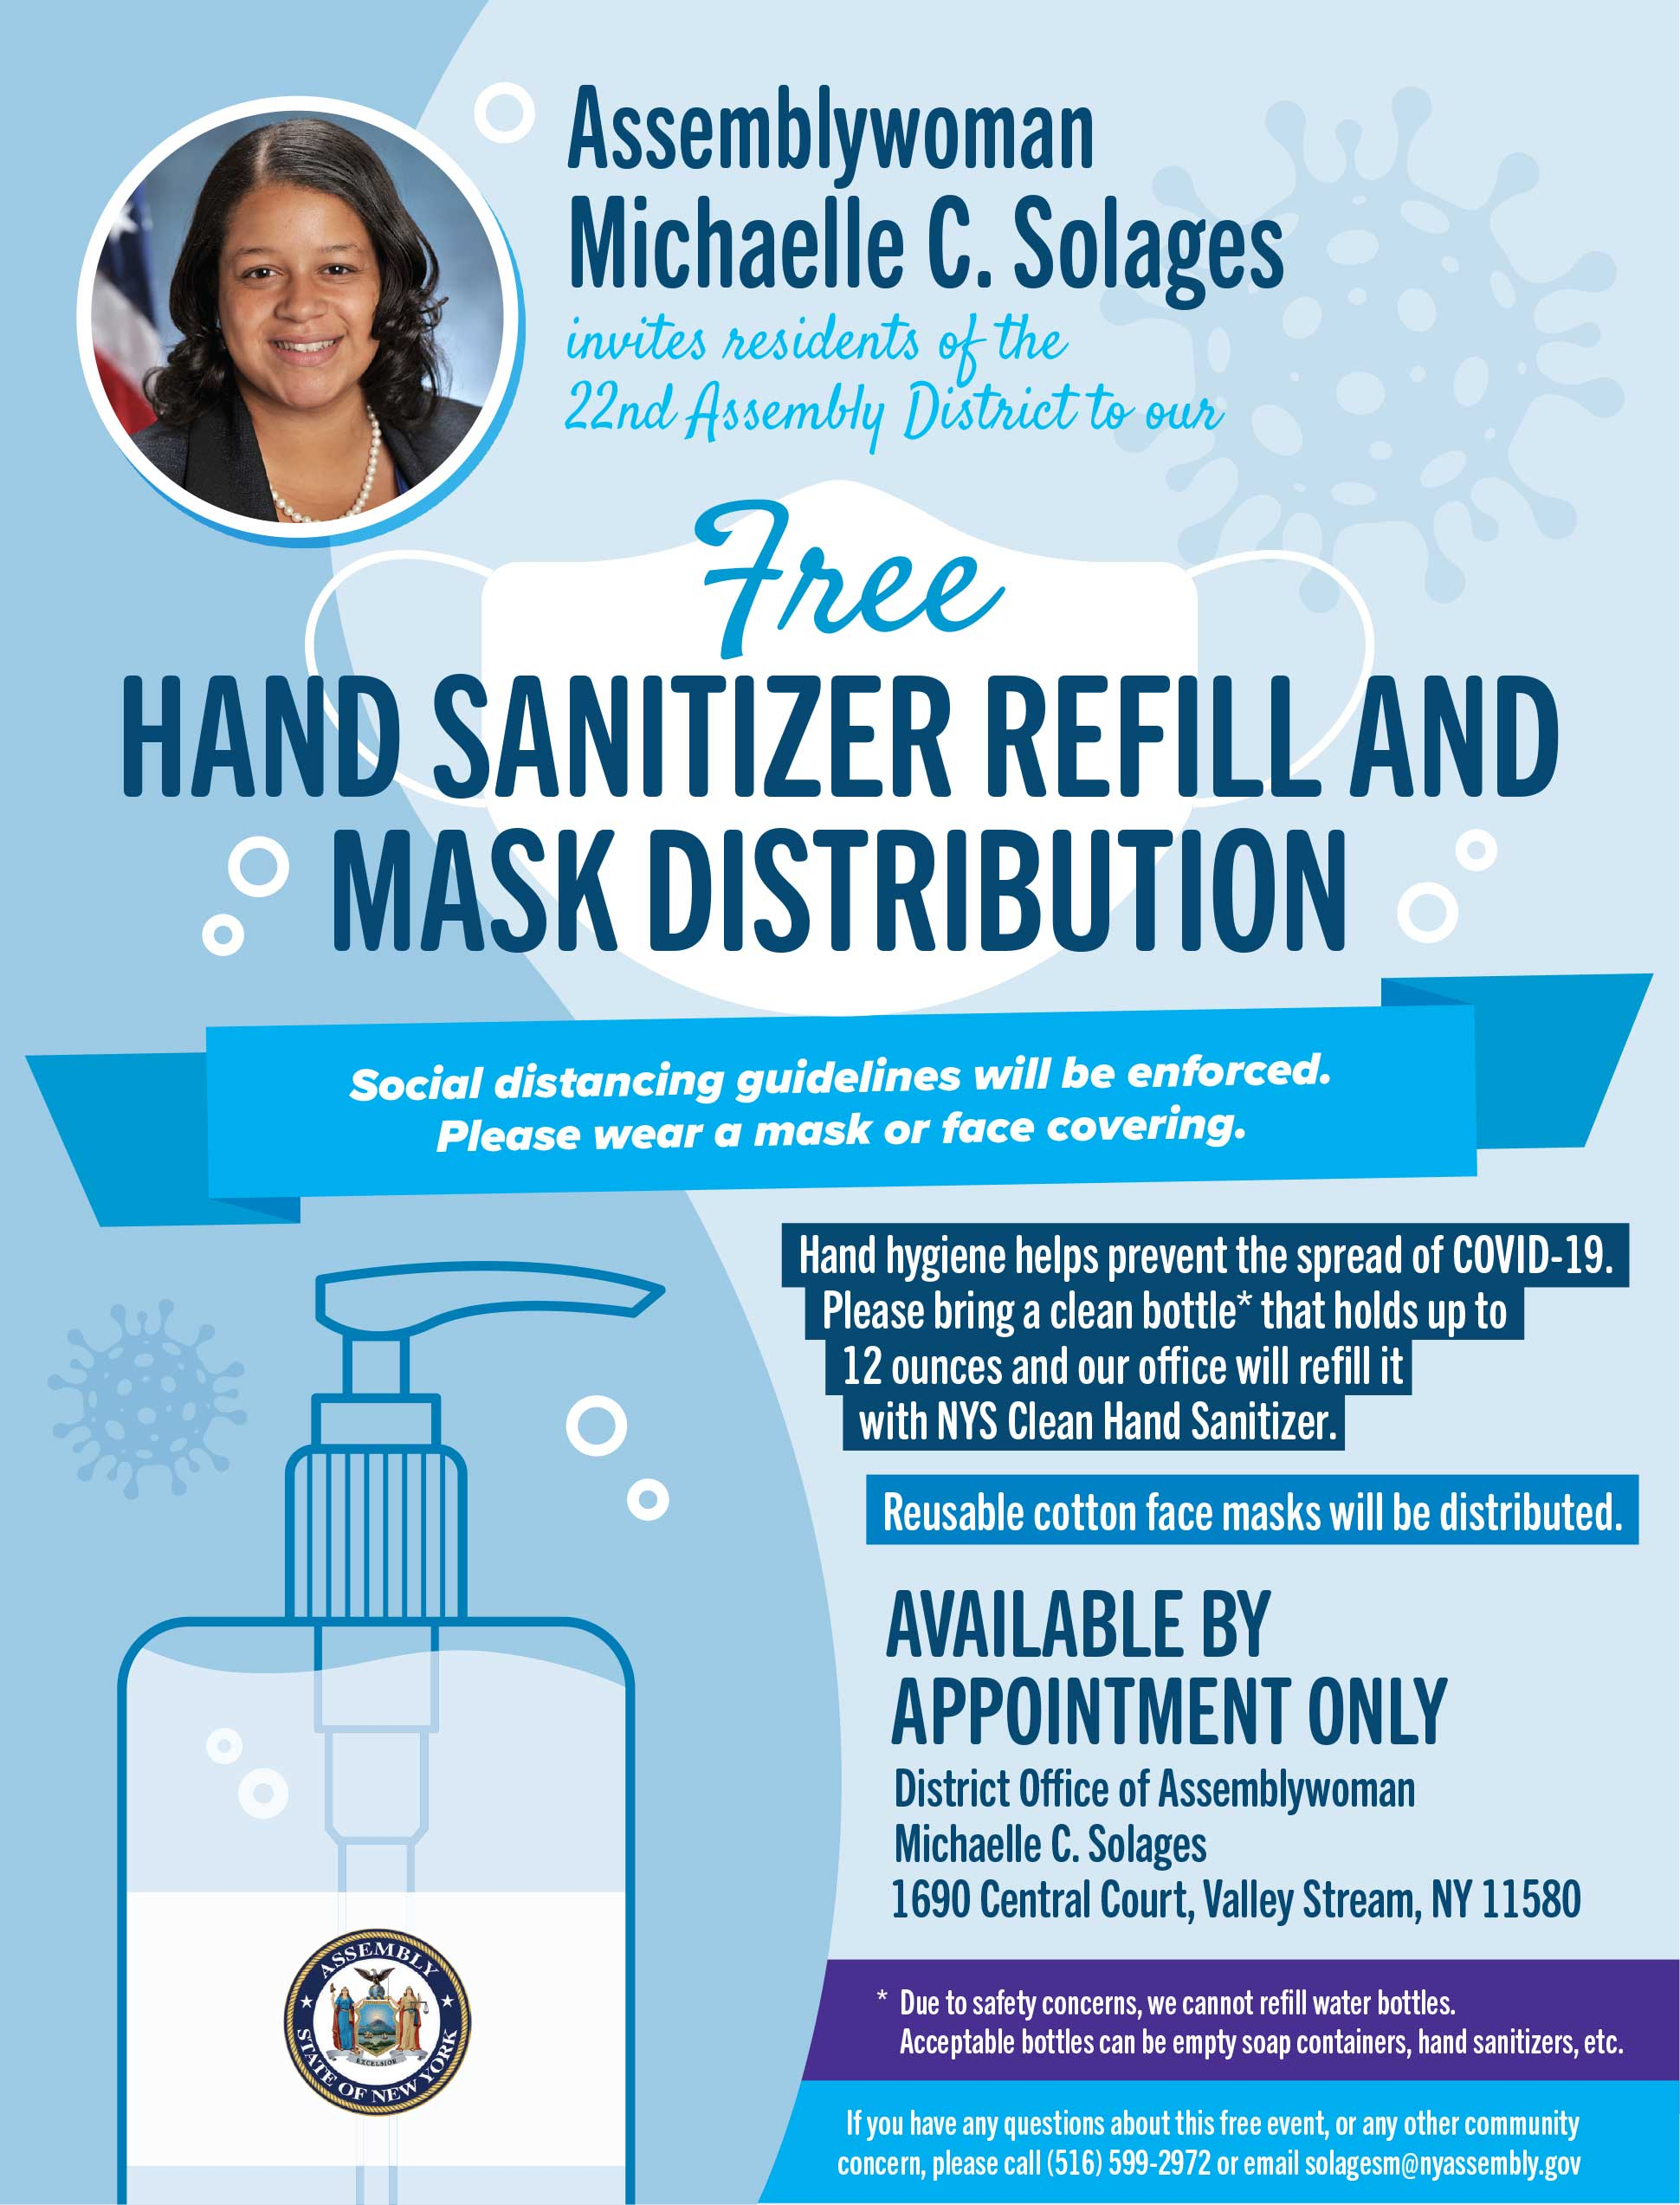 Hand Sanitizer Refill and Mask Distribution